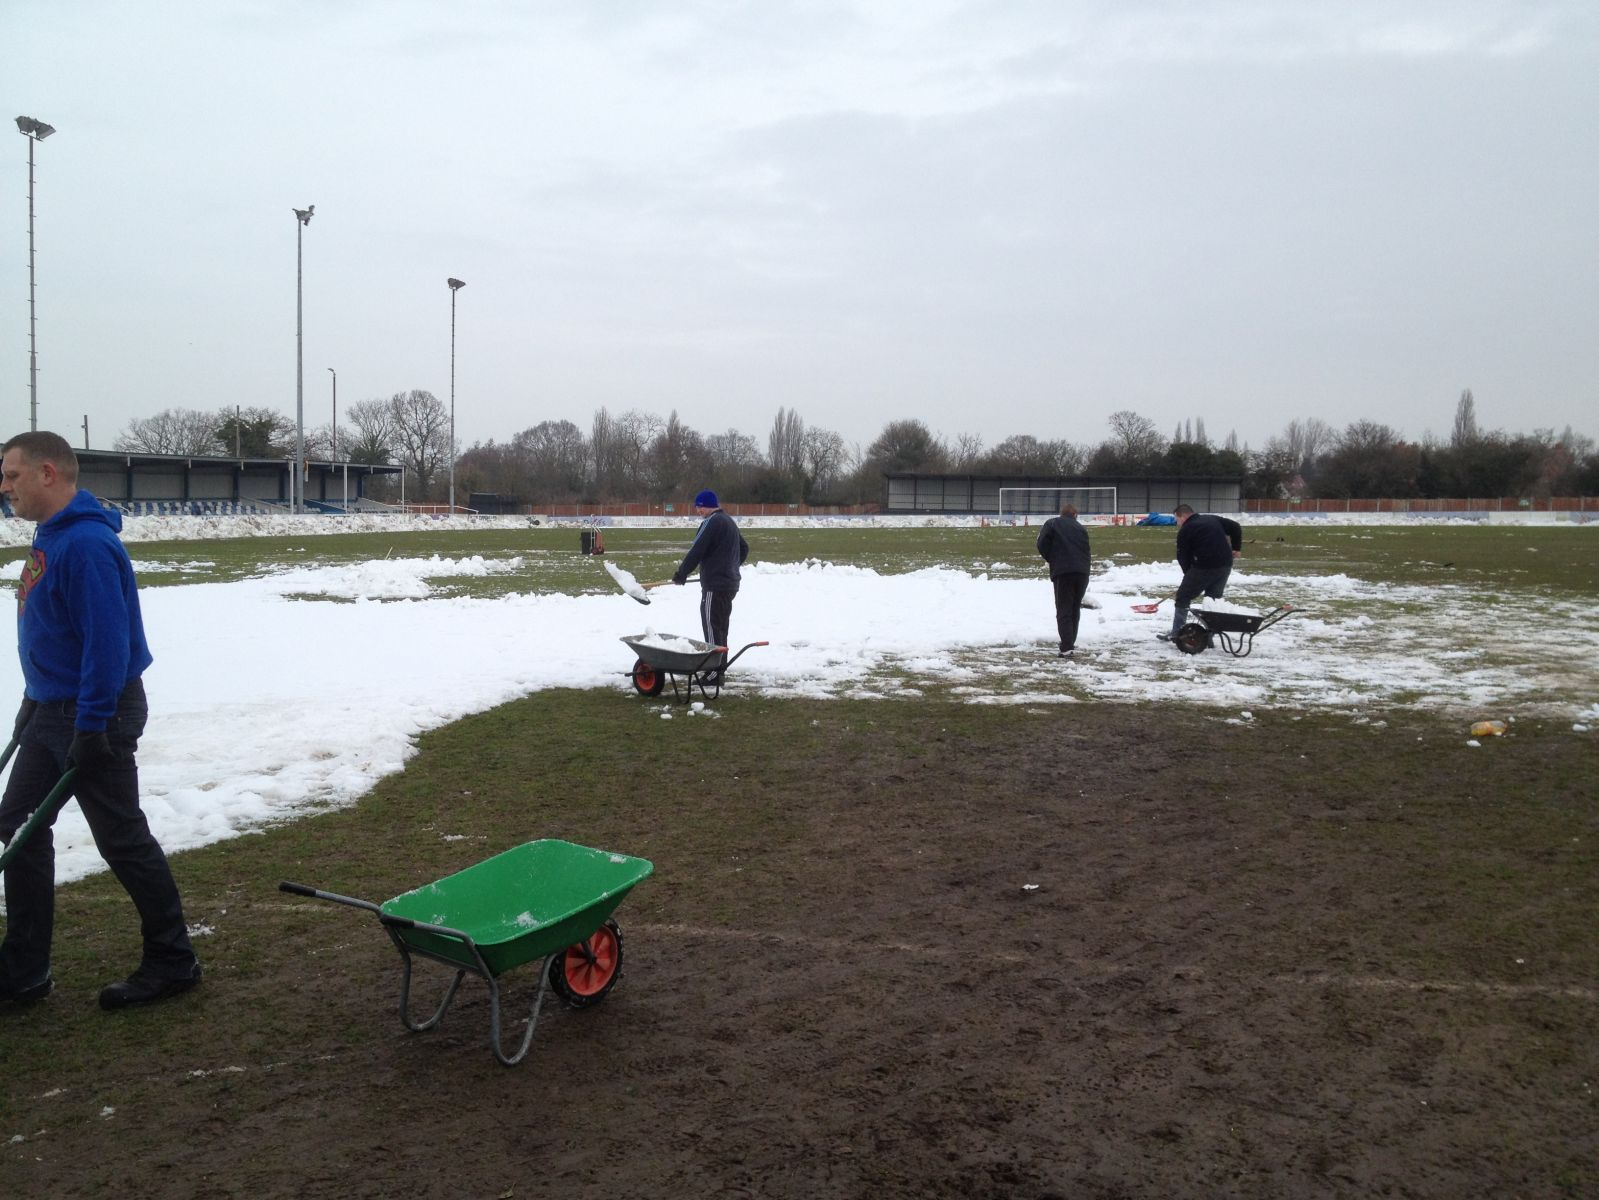 LAST 1/4 OF THE PITCH TO GO